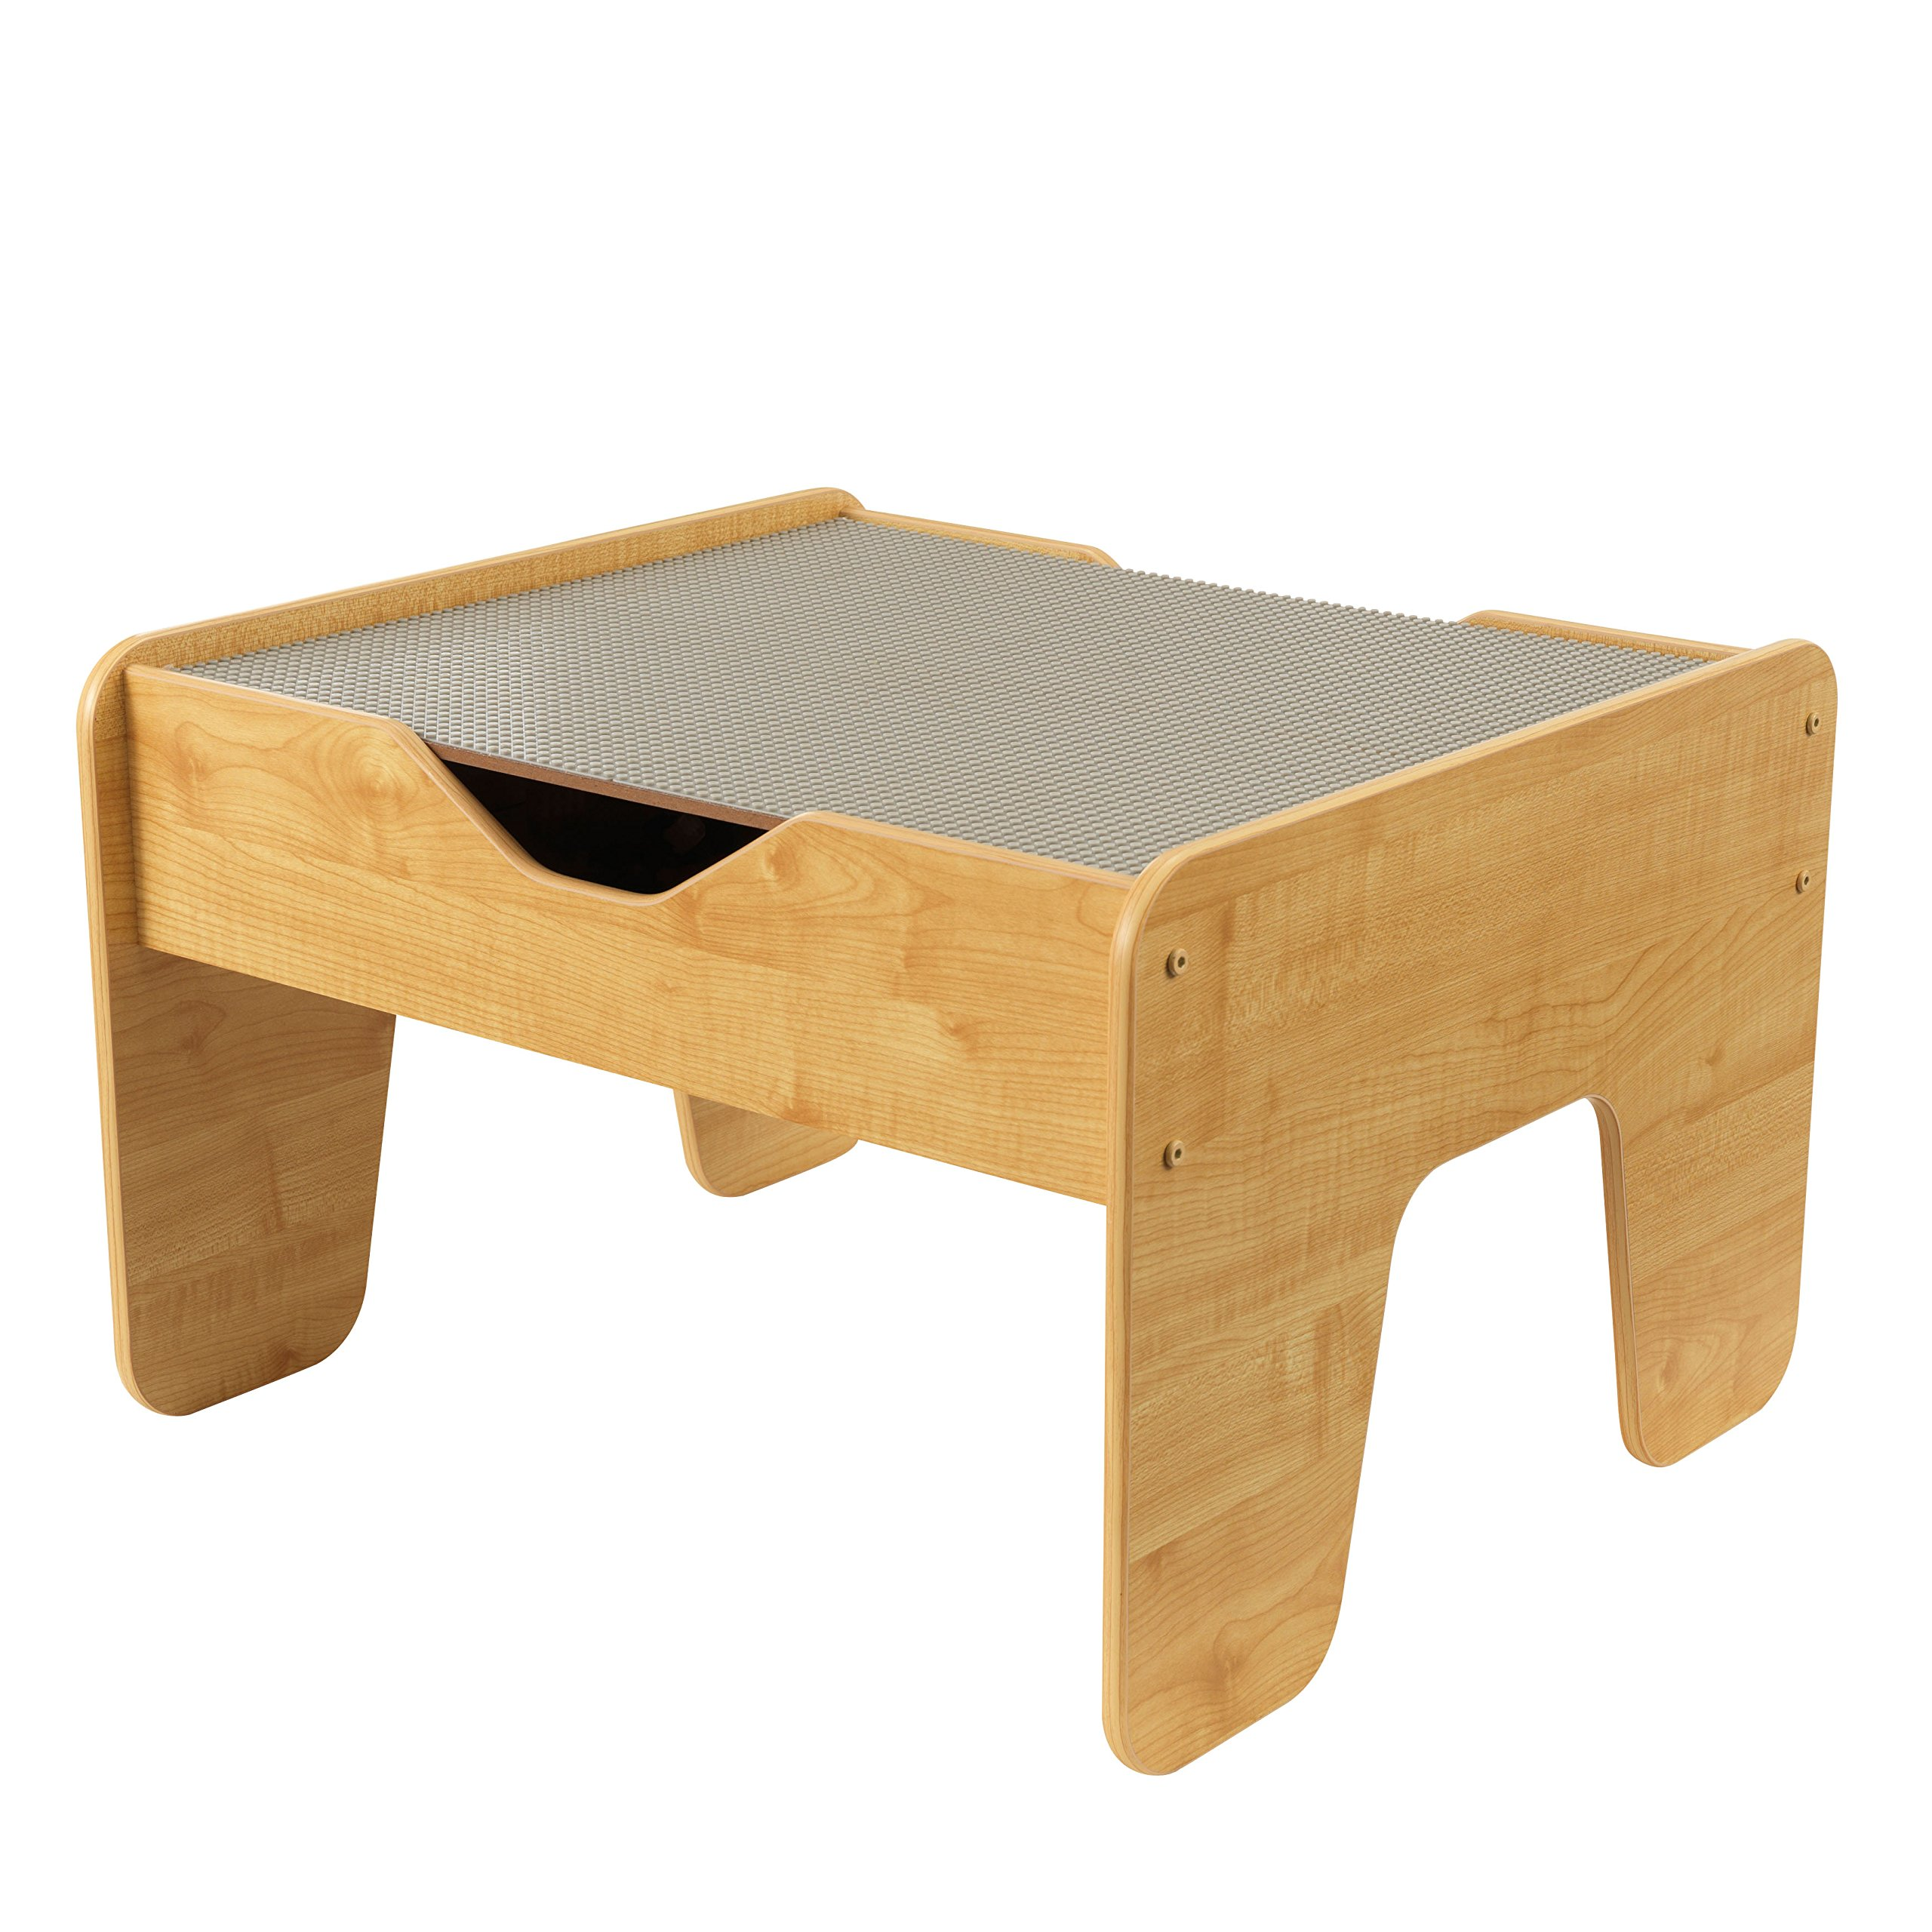 KidKraft 2-in-1 Activity Table with Board, Gray/Natural by KidKraft